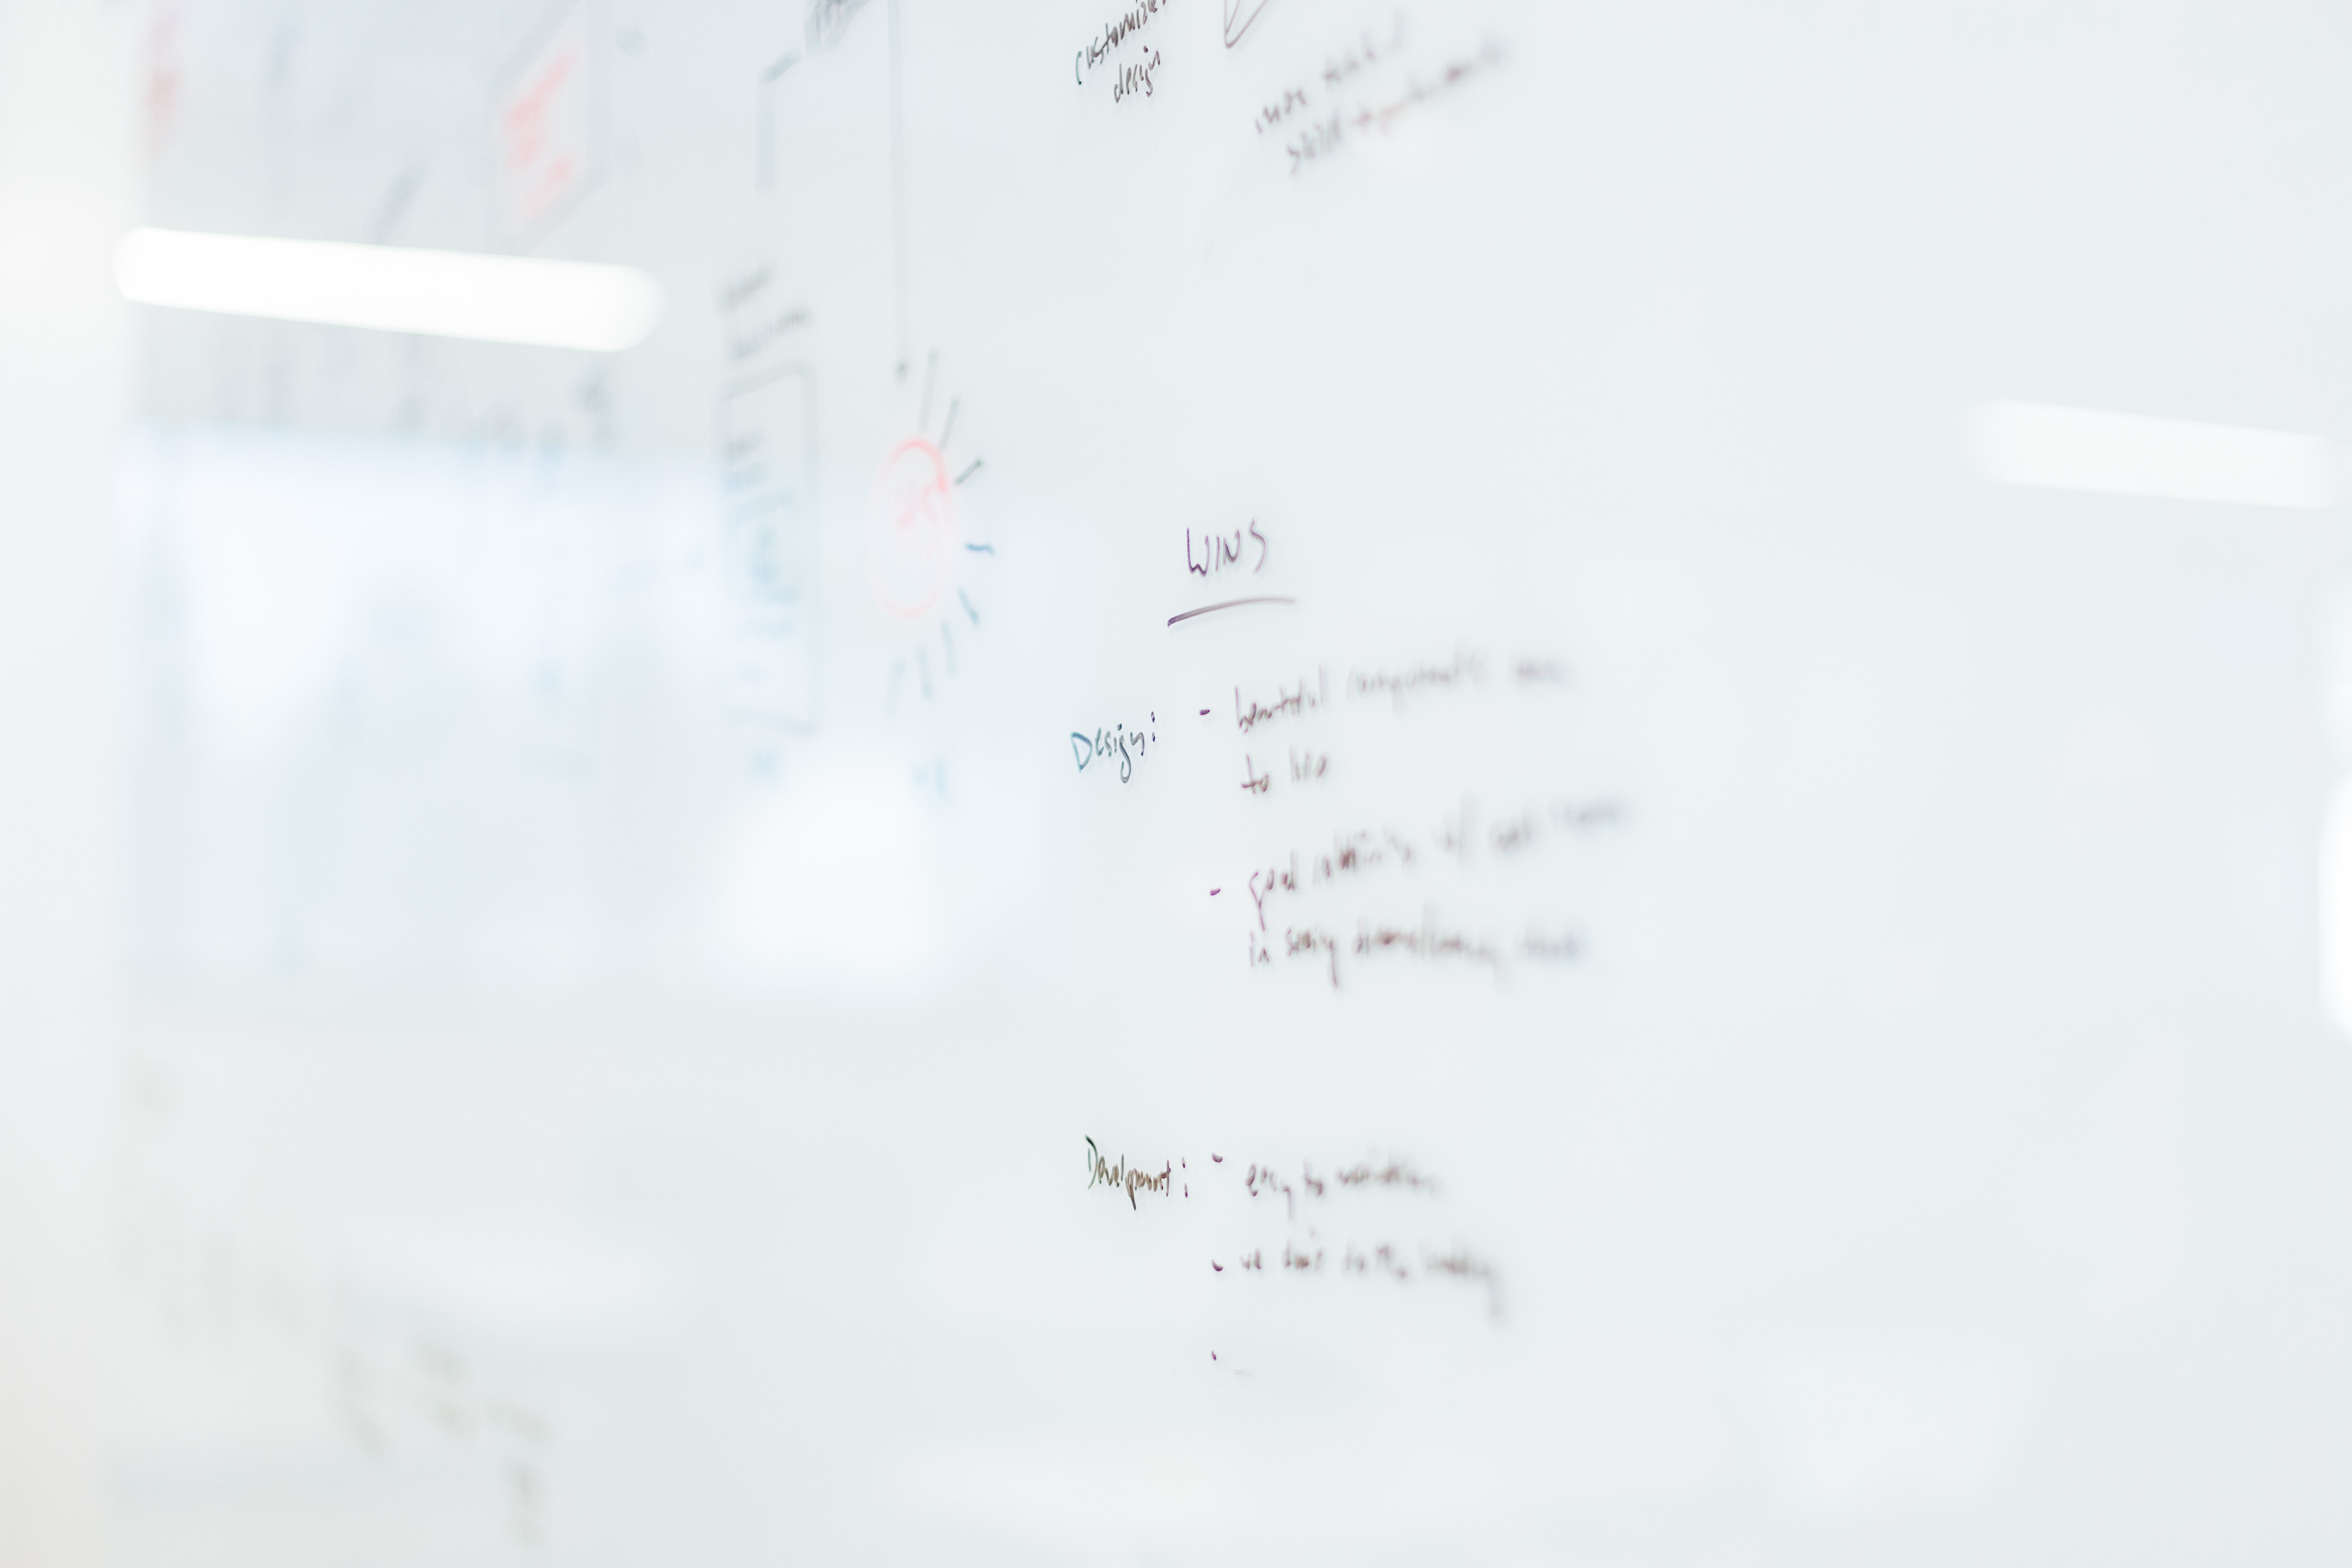 Bullet points listed on a glossy whiteboard